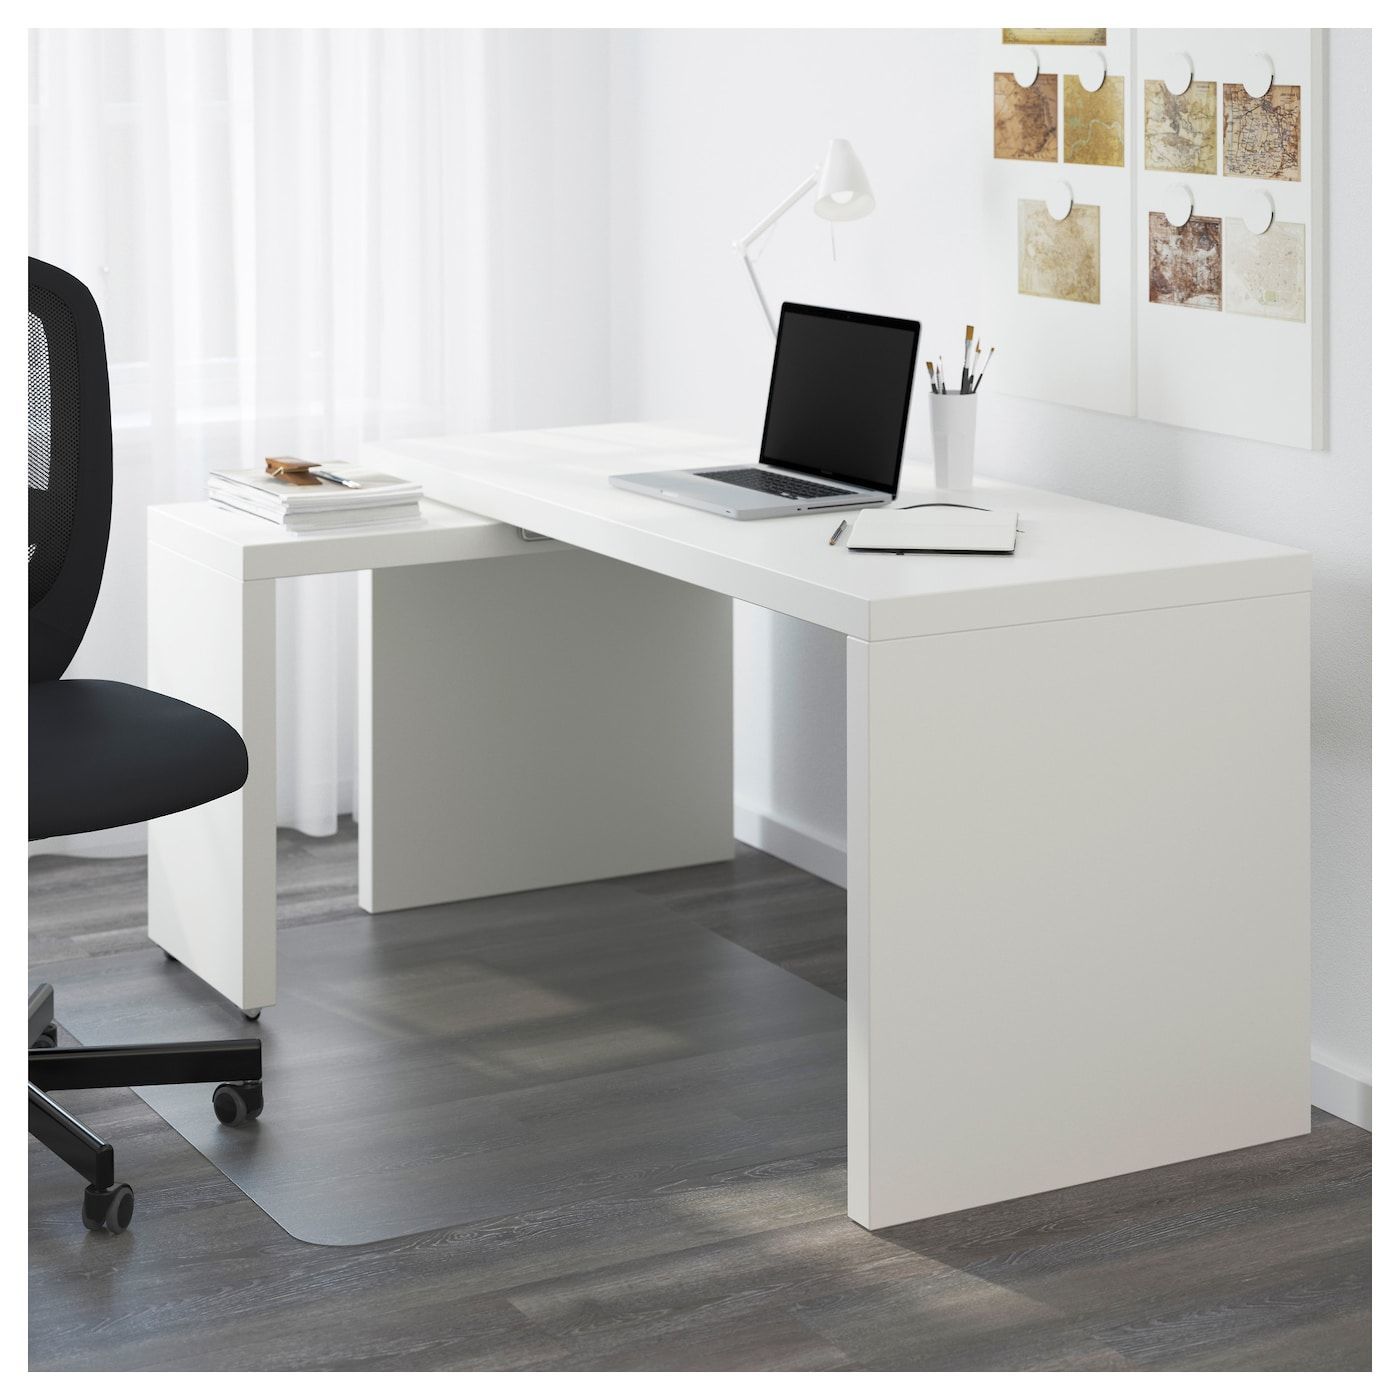 Malm Desk With Pull Out Panel White 59 1 2x25 5 8 Ikea Ikea Malm Schreibtisch Ikea Schreibtisch Weiss Schreibtisch Weiss